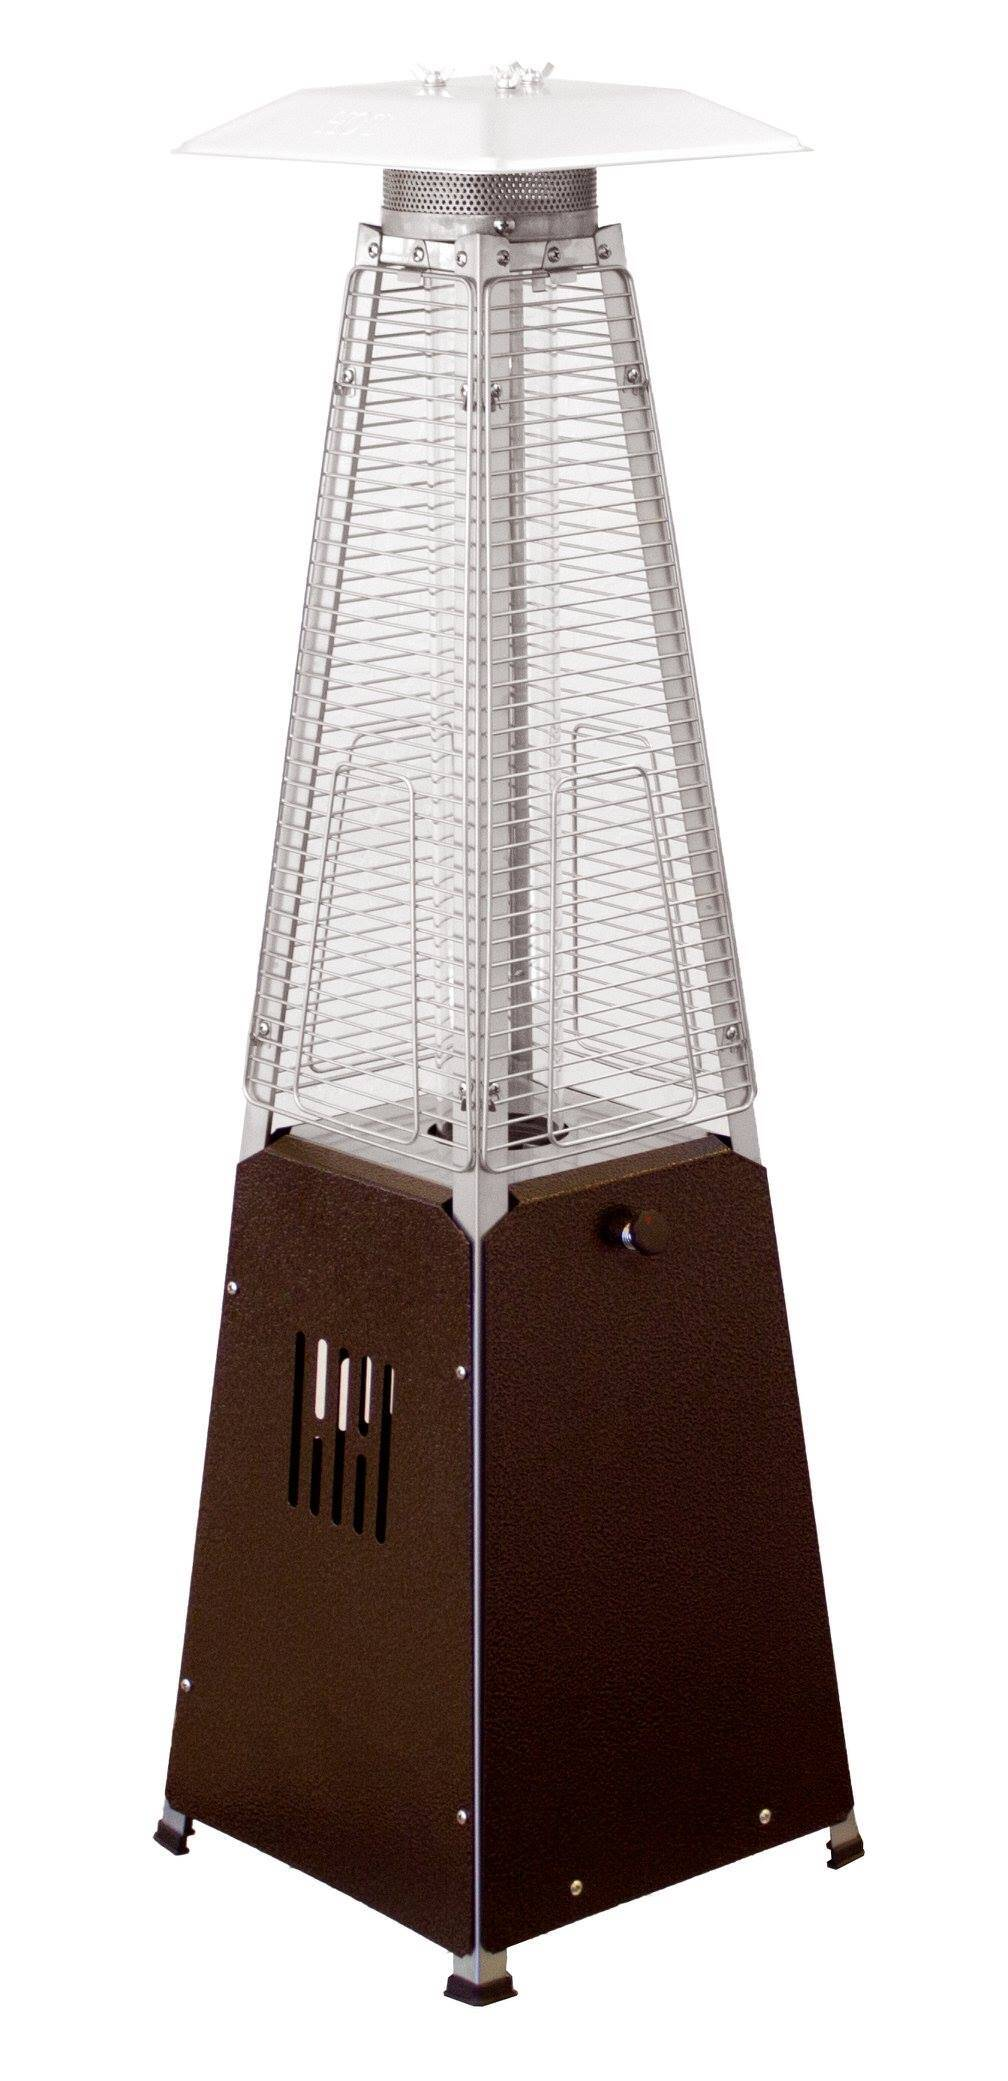 39u2033 Tall Radiant Heat Glass Tube Outdoor Patio Heater (Hammered Bronze) 1